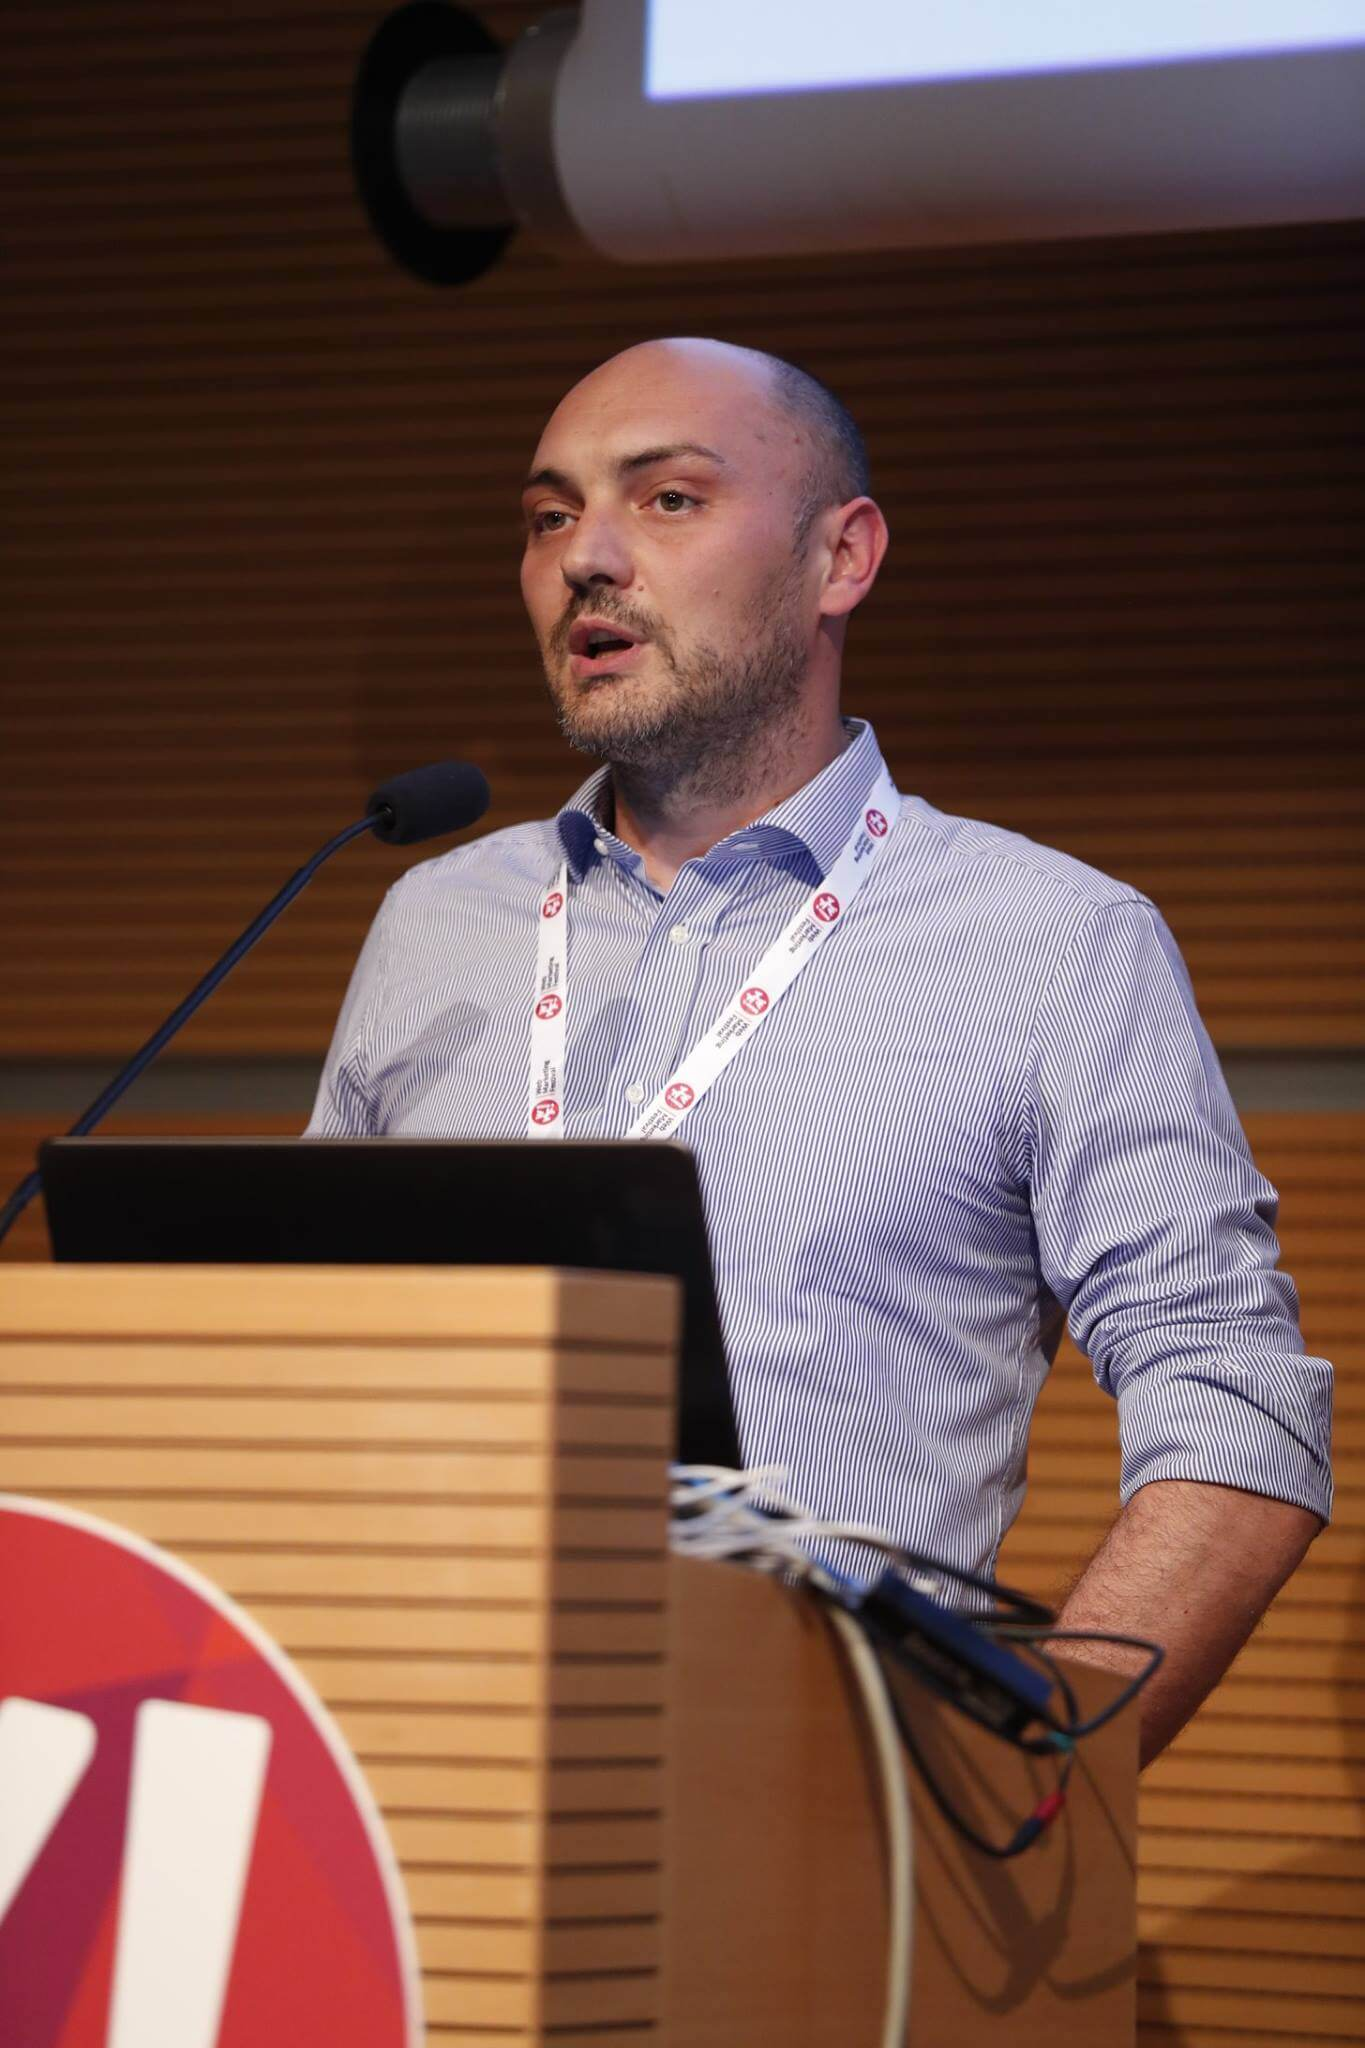 Giovanni Sacheli al Web Marketing Festival 2018